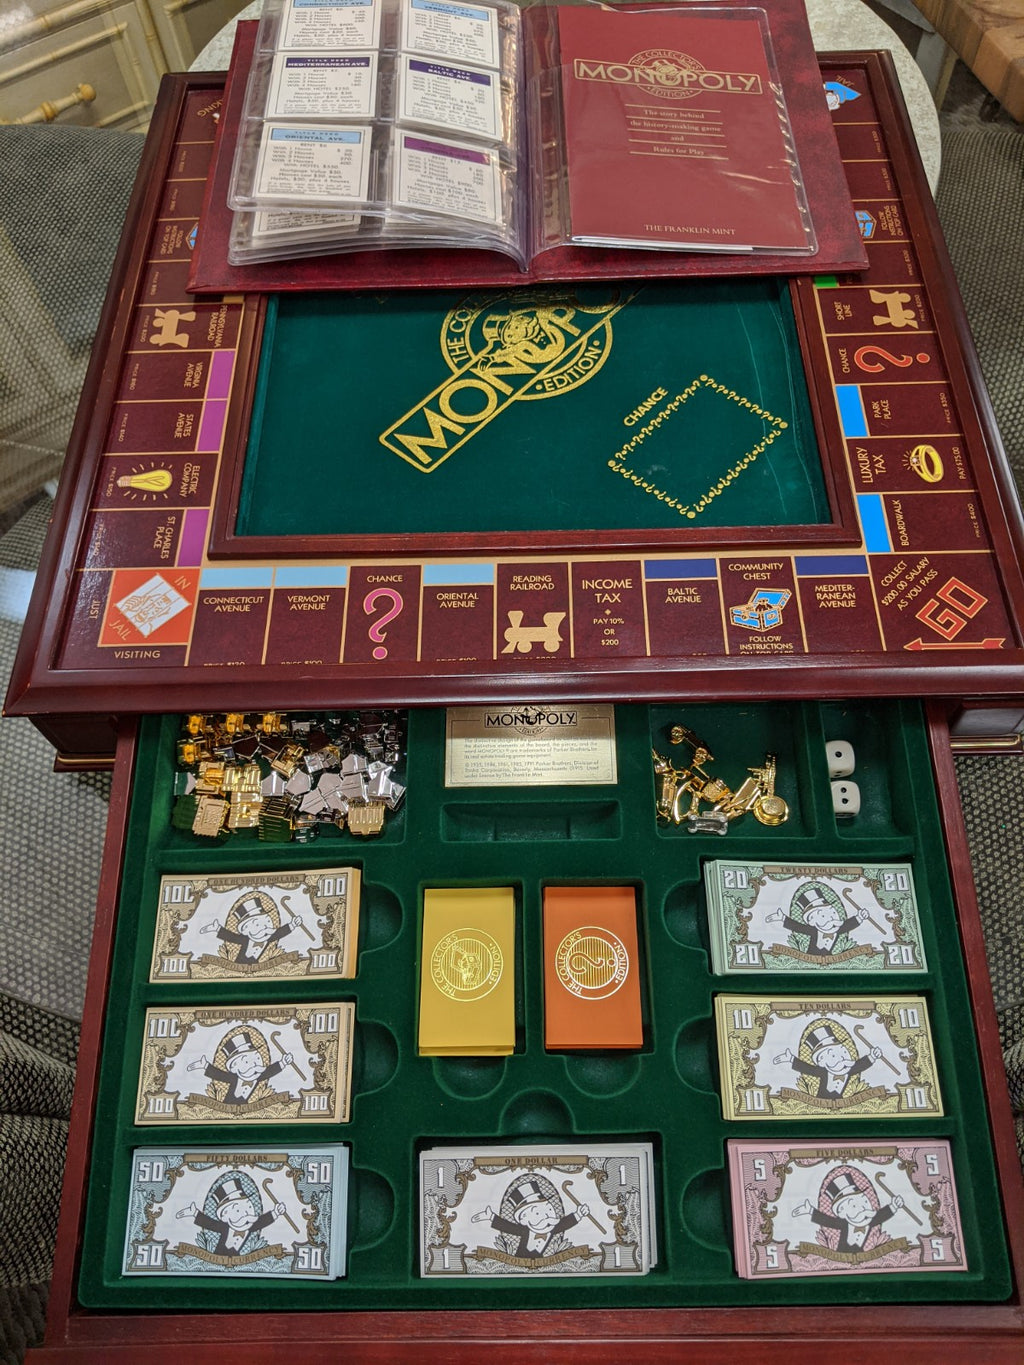 Franklin Mint 1991 Collector's Edition Monopoly Game set